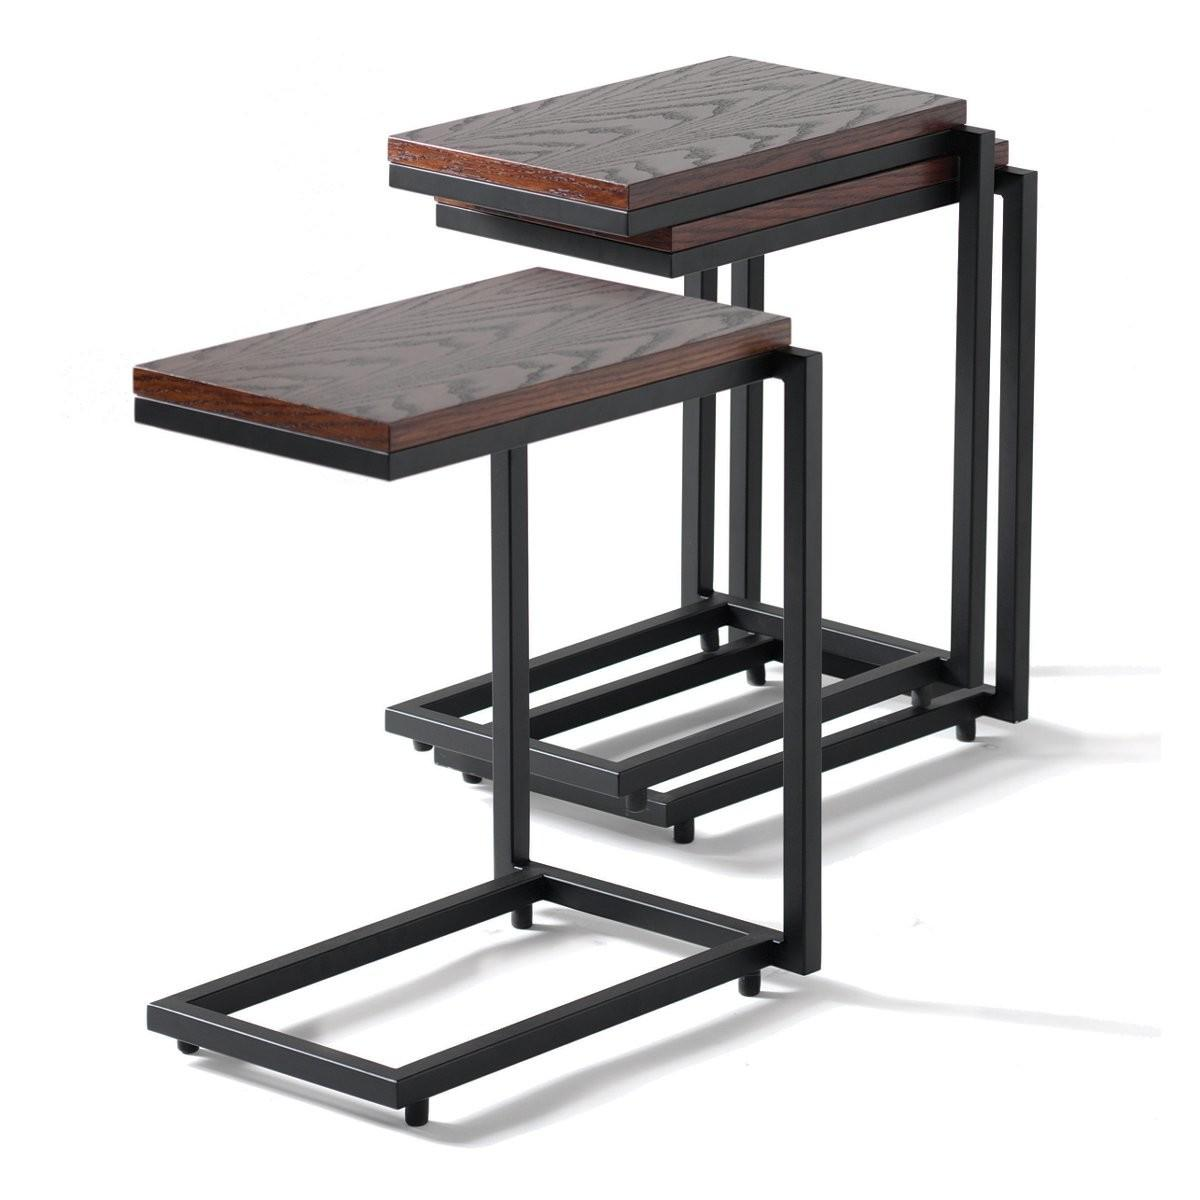 Tag Furnishings Group Stacking Narrow Tray Table Atg Stores